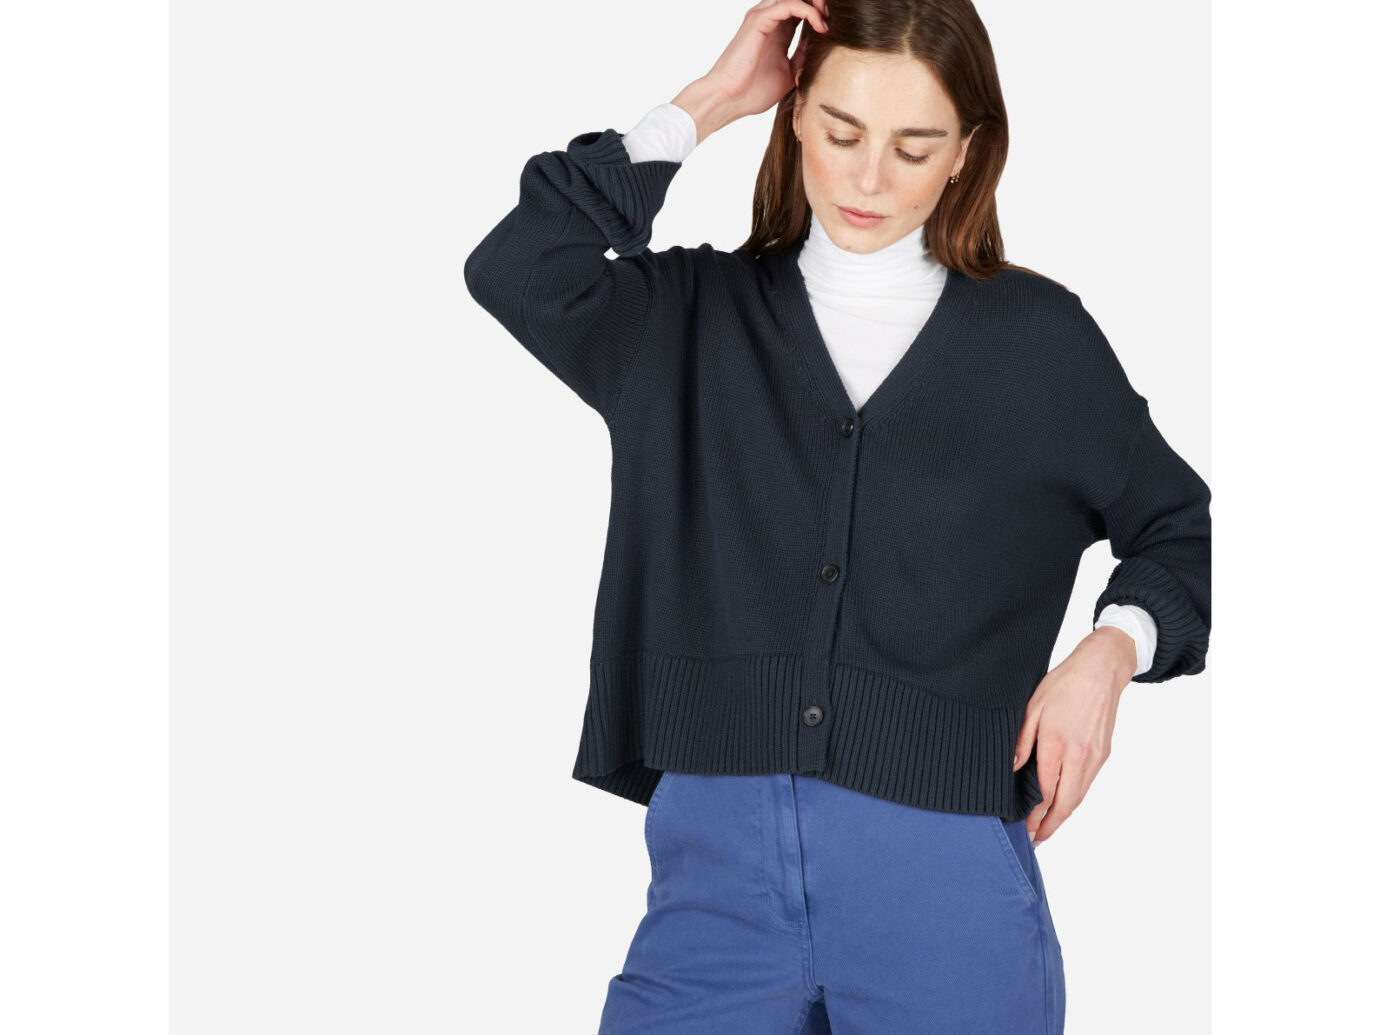 Everlane The Soft Cotton Square Cardigan